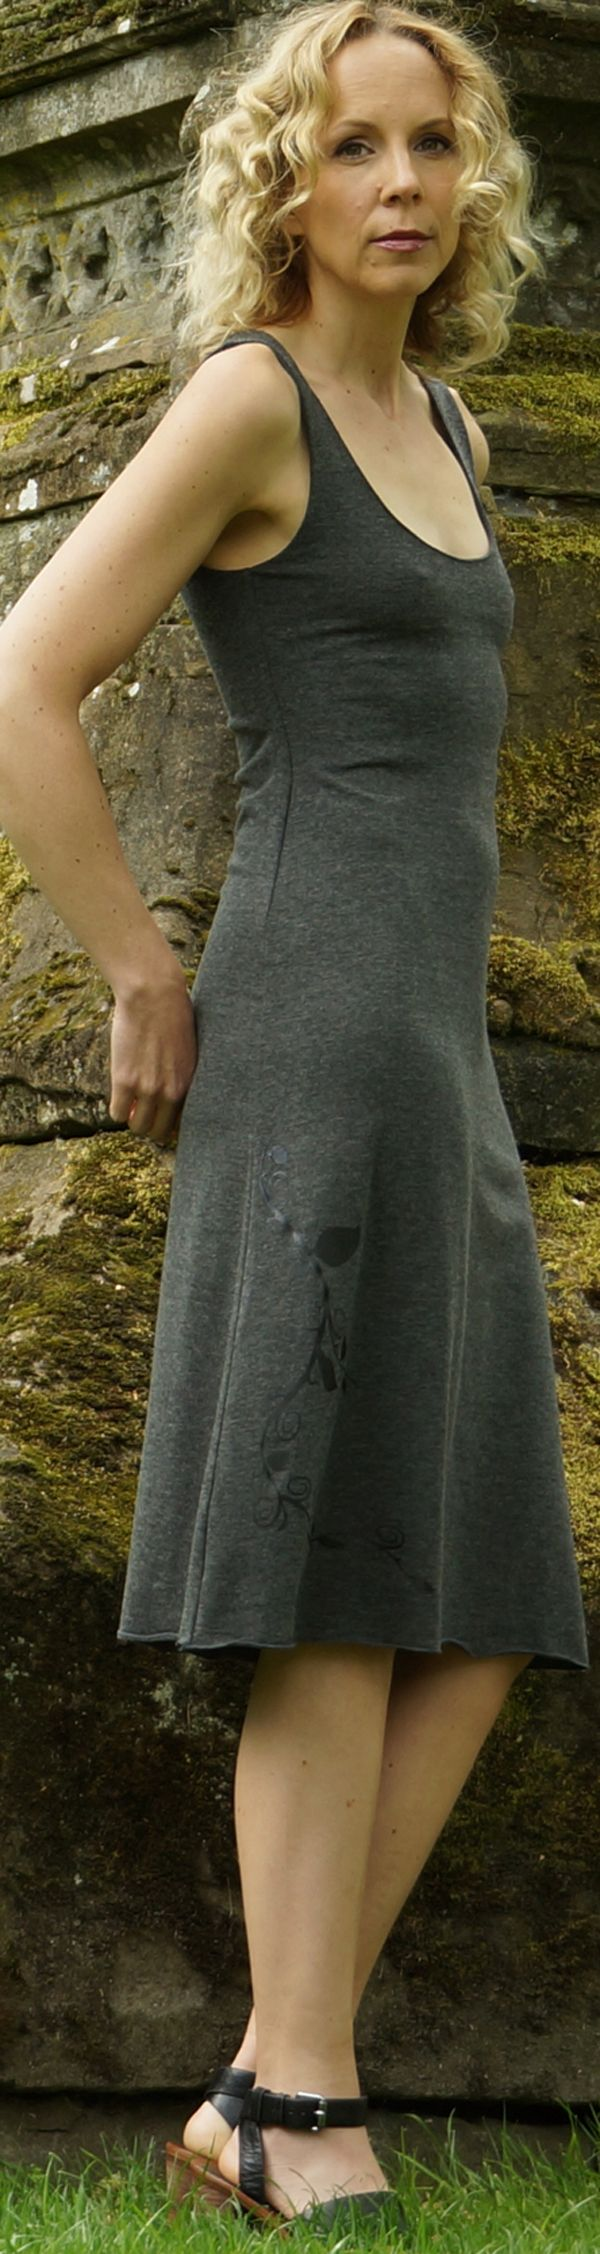 Your Perfect Vacation Dress ! Simple, Chic, Comfortable Bamboo Dress from Squeezed Yoga Clothing $98.  http://squeezed.ca/shop/charcoal-bamboo-a-line-dress-with-black-vine-print